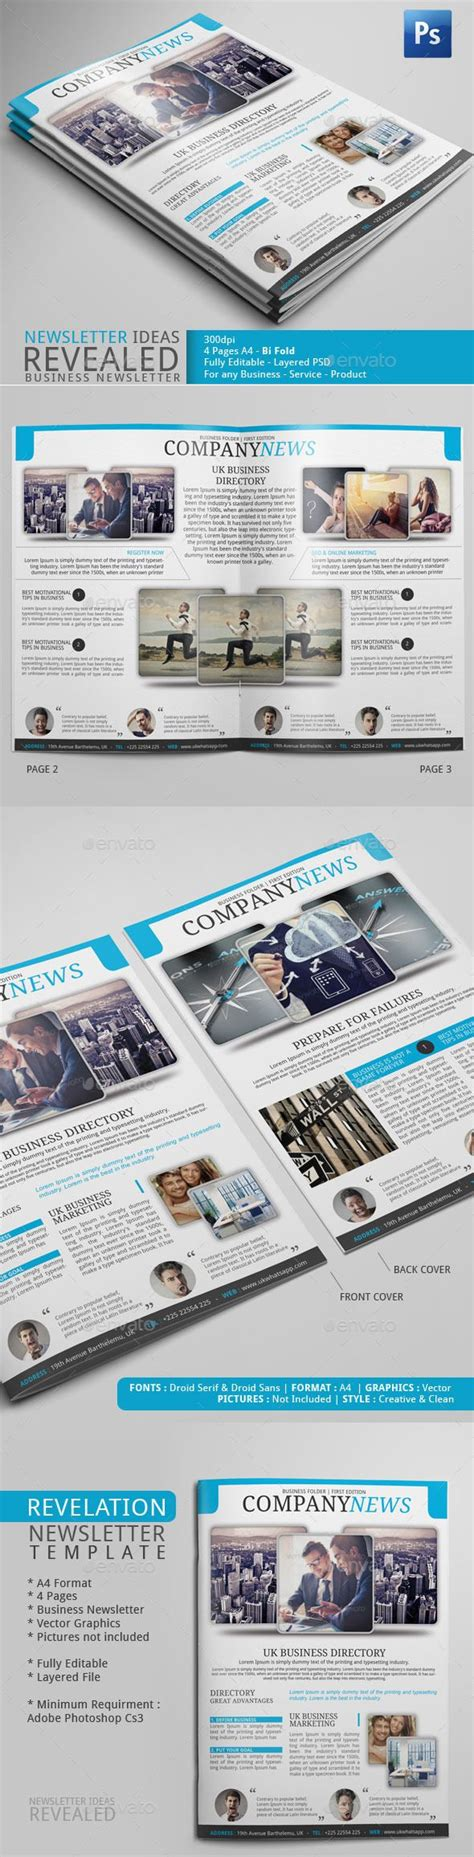 newsletter layout photoshop 17 best images about newsletter exles adobe photoshop